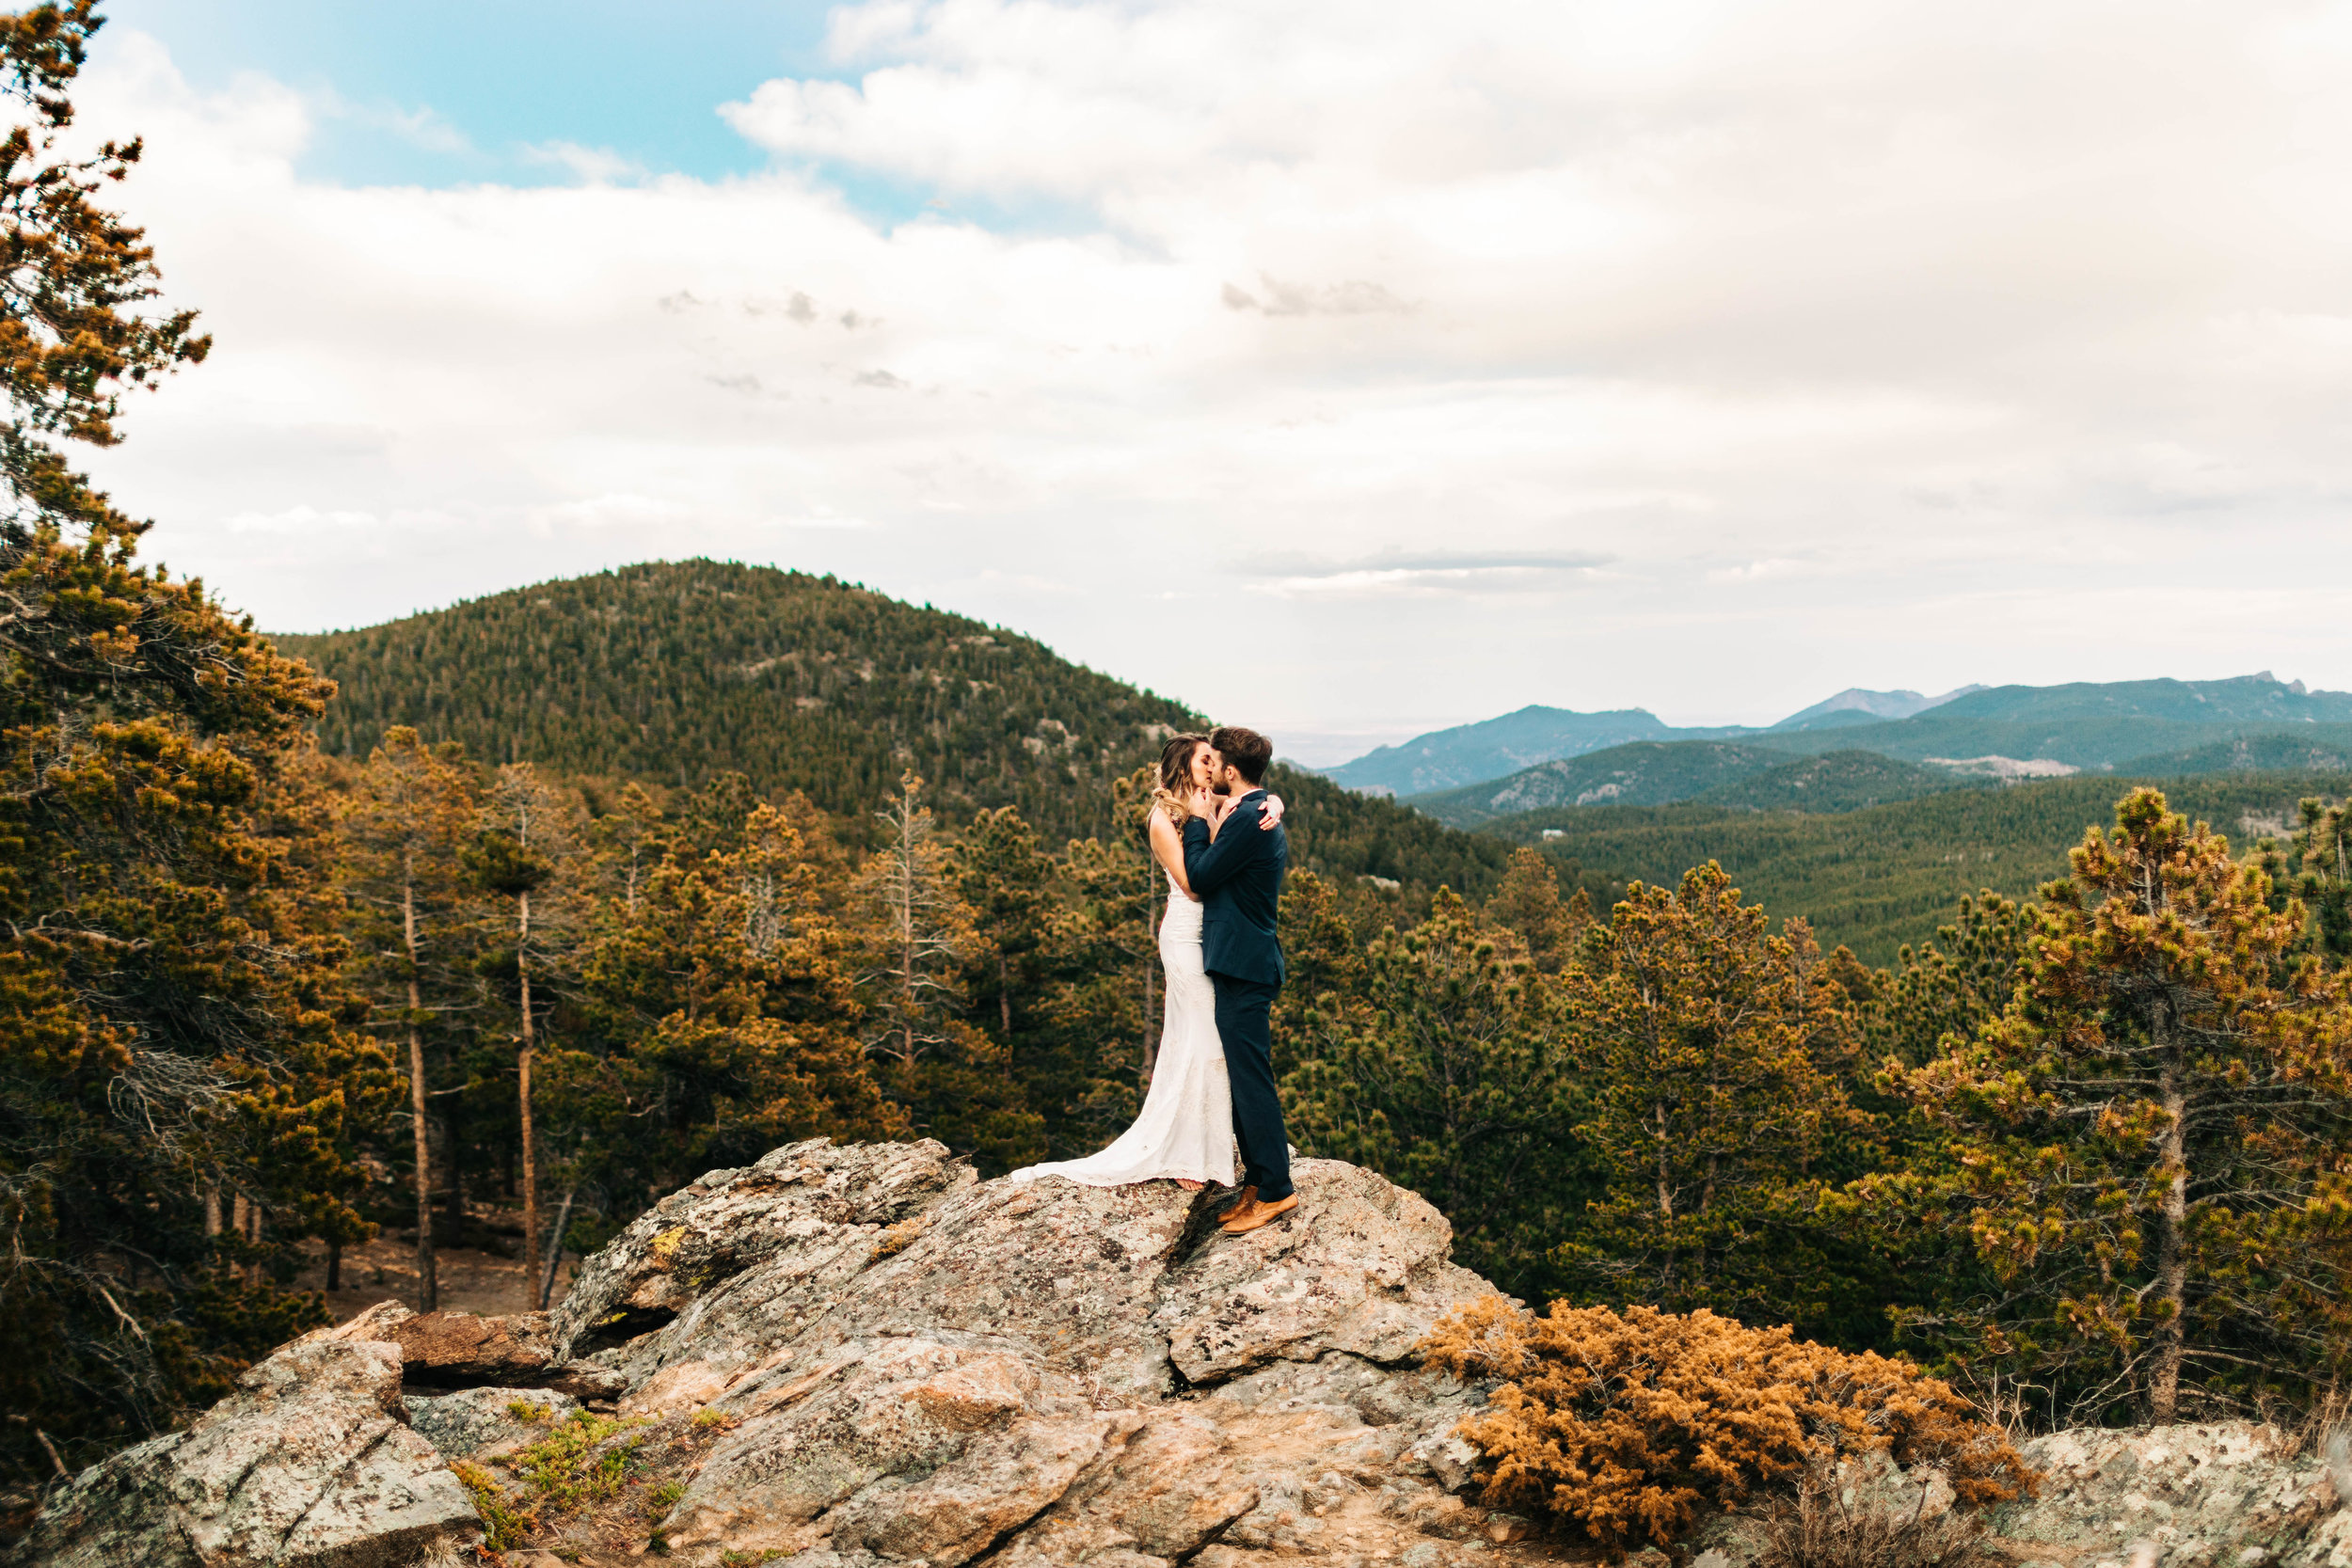 epic Colorado elopement photos on the edge of a mountain | Rocky Mountain elopement photographers